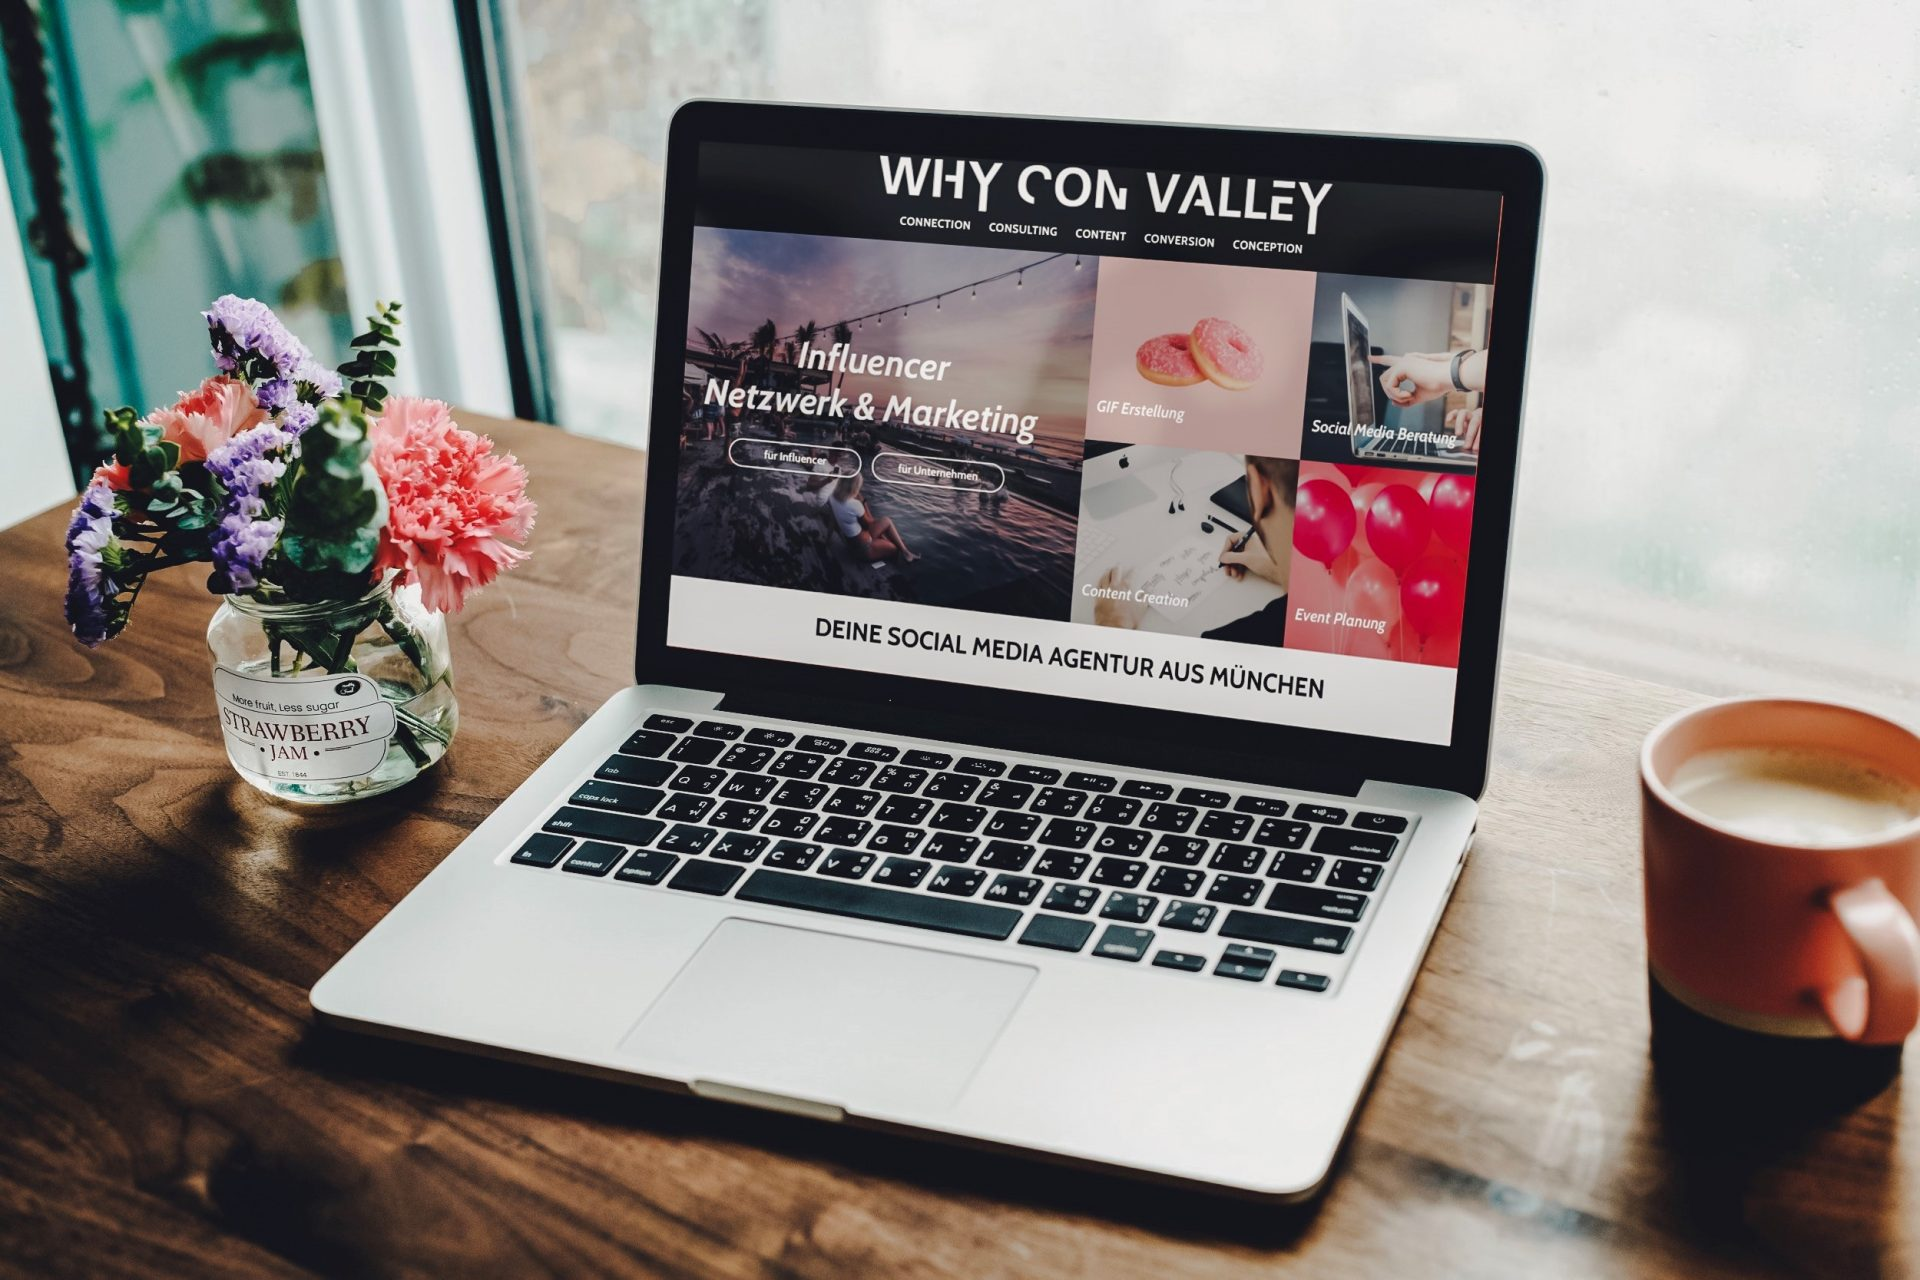 WHY CON VALLEY – MEINE SOCIAL MEDIA AGENTUR